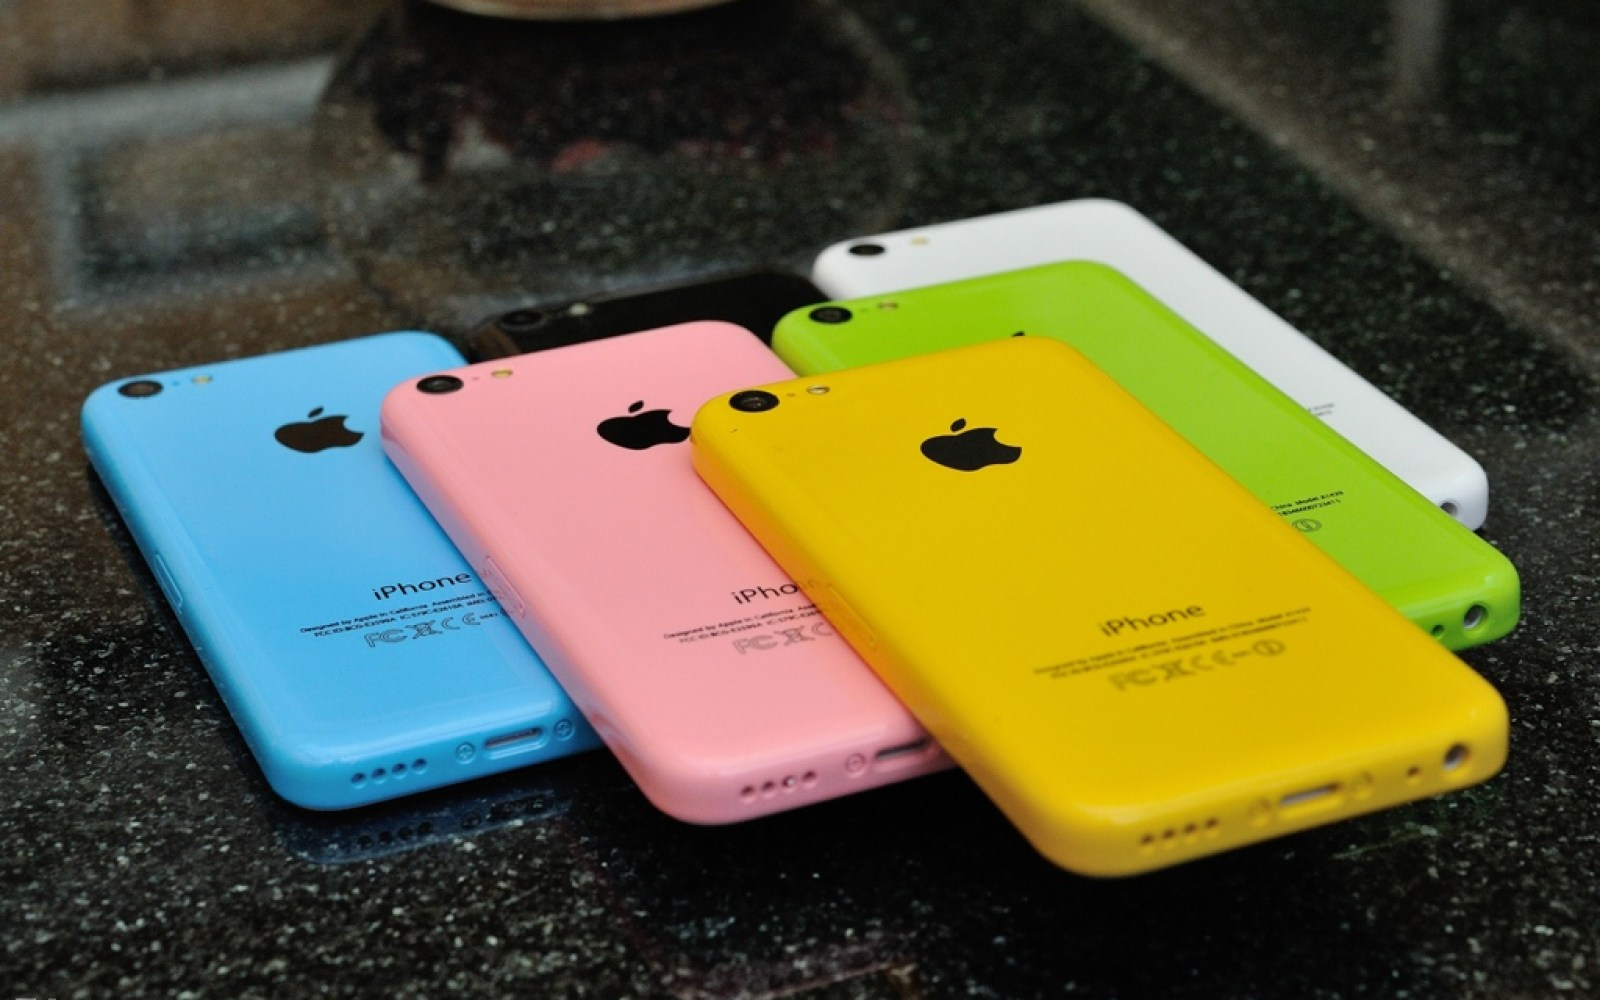 Plastic iPhone dummy units show altered color palette including pink & yellowish-orange